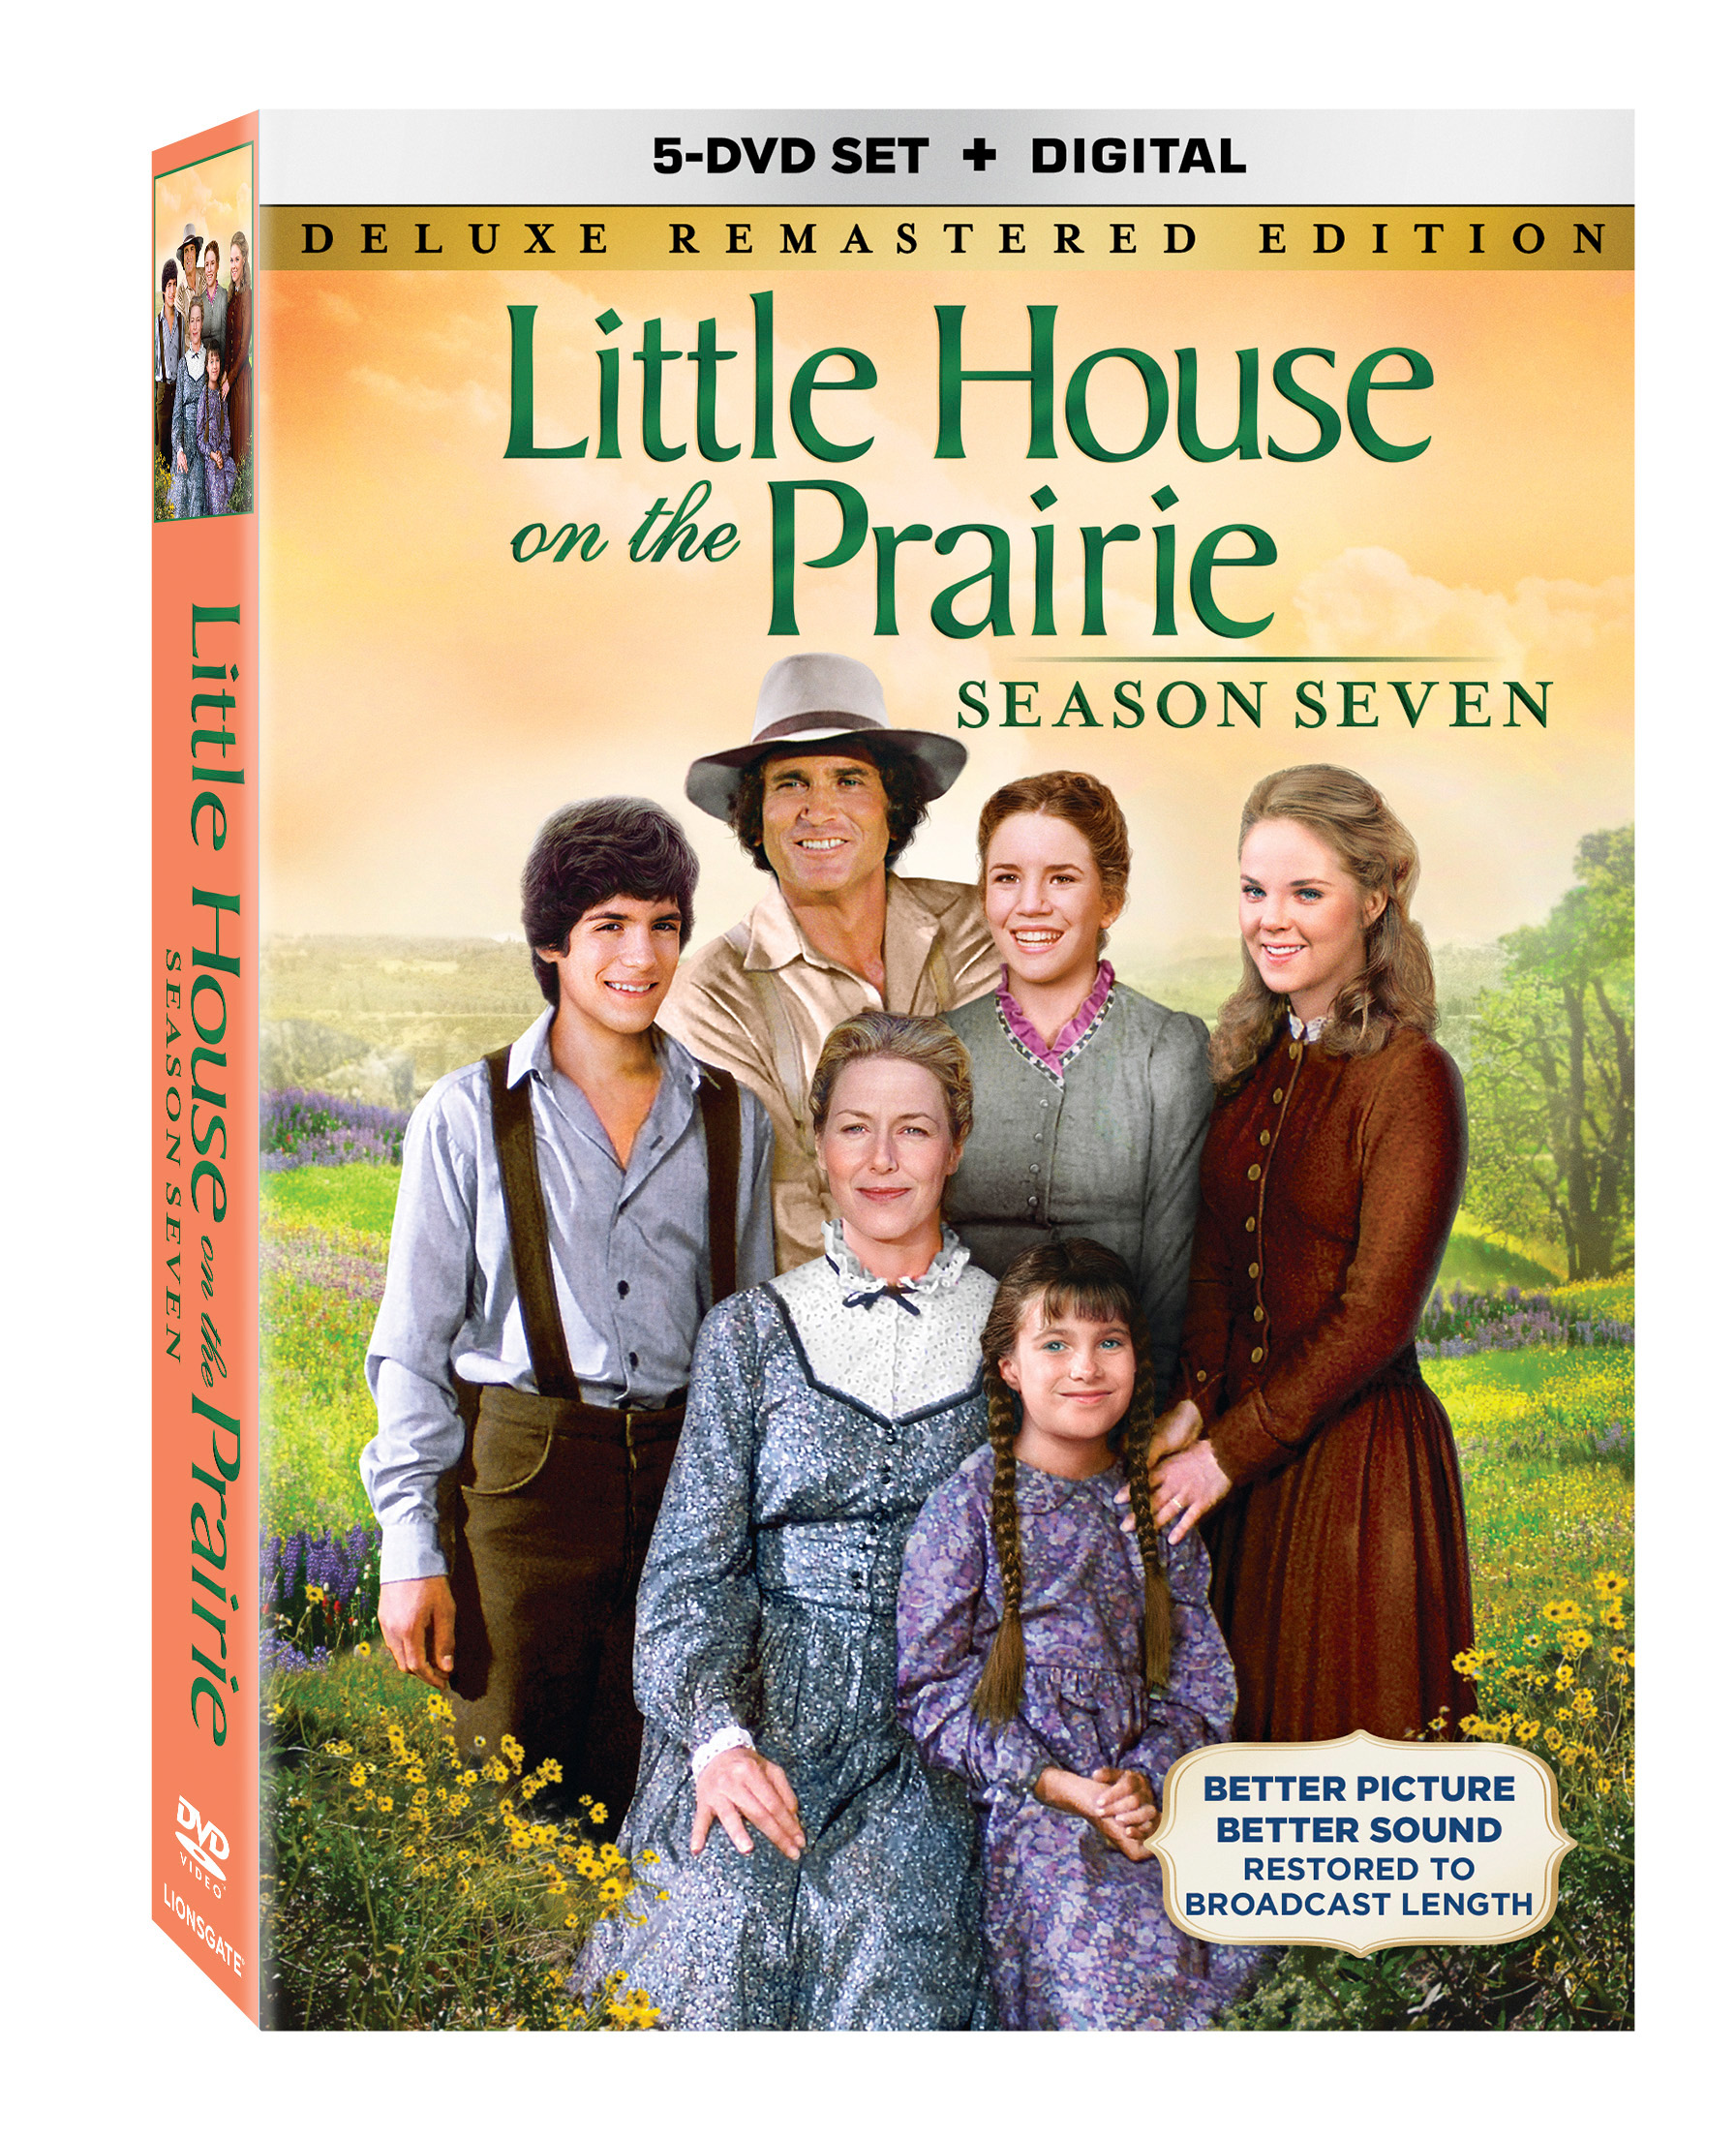 little house on the prairie season seven available on dvd october